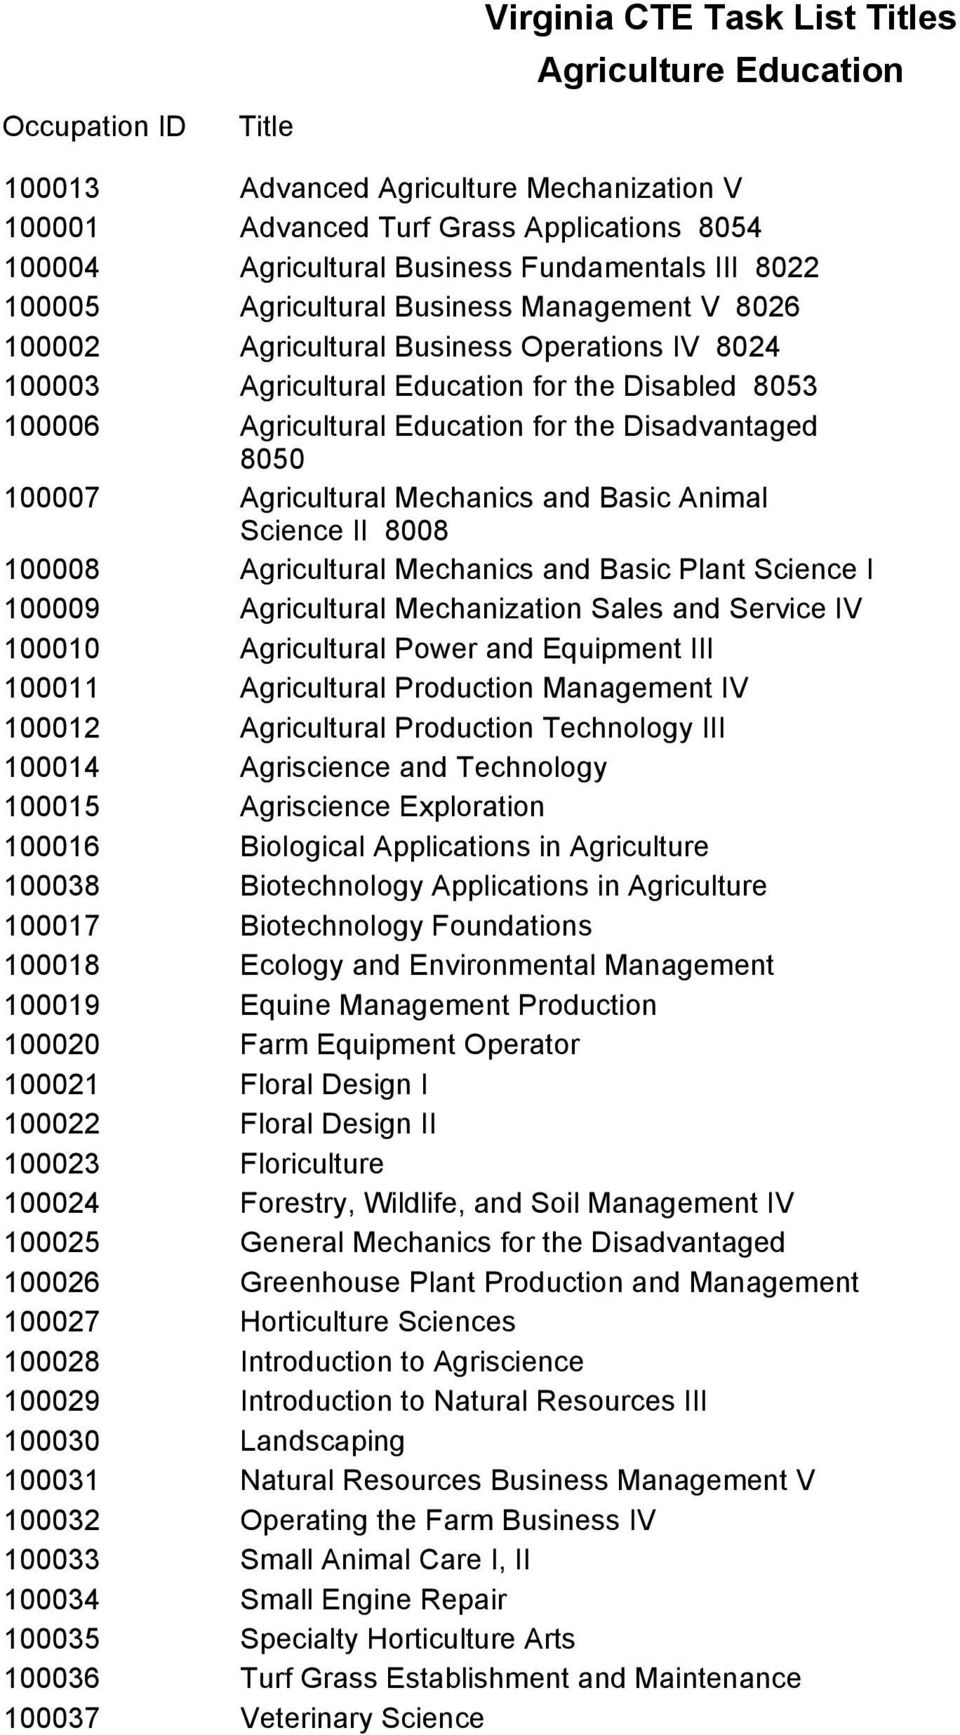 100007 Agricultural Mechanics and Basic Animal Science II 8008 100008 Agricultural Mechanics and Basic Plant Science I 100009 Agricultural Mechanization Sales and Service IV 100010 Agricultural Power